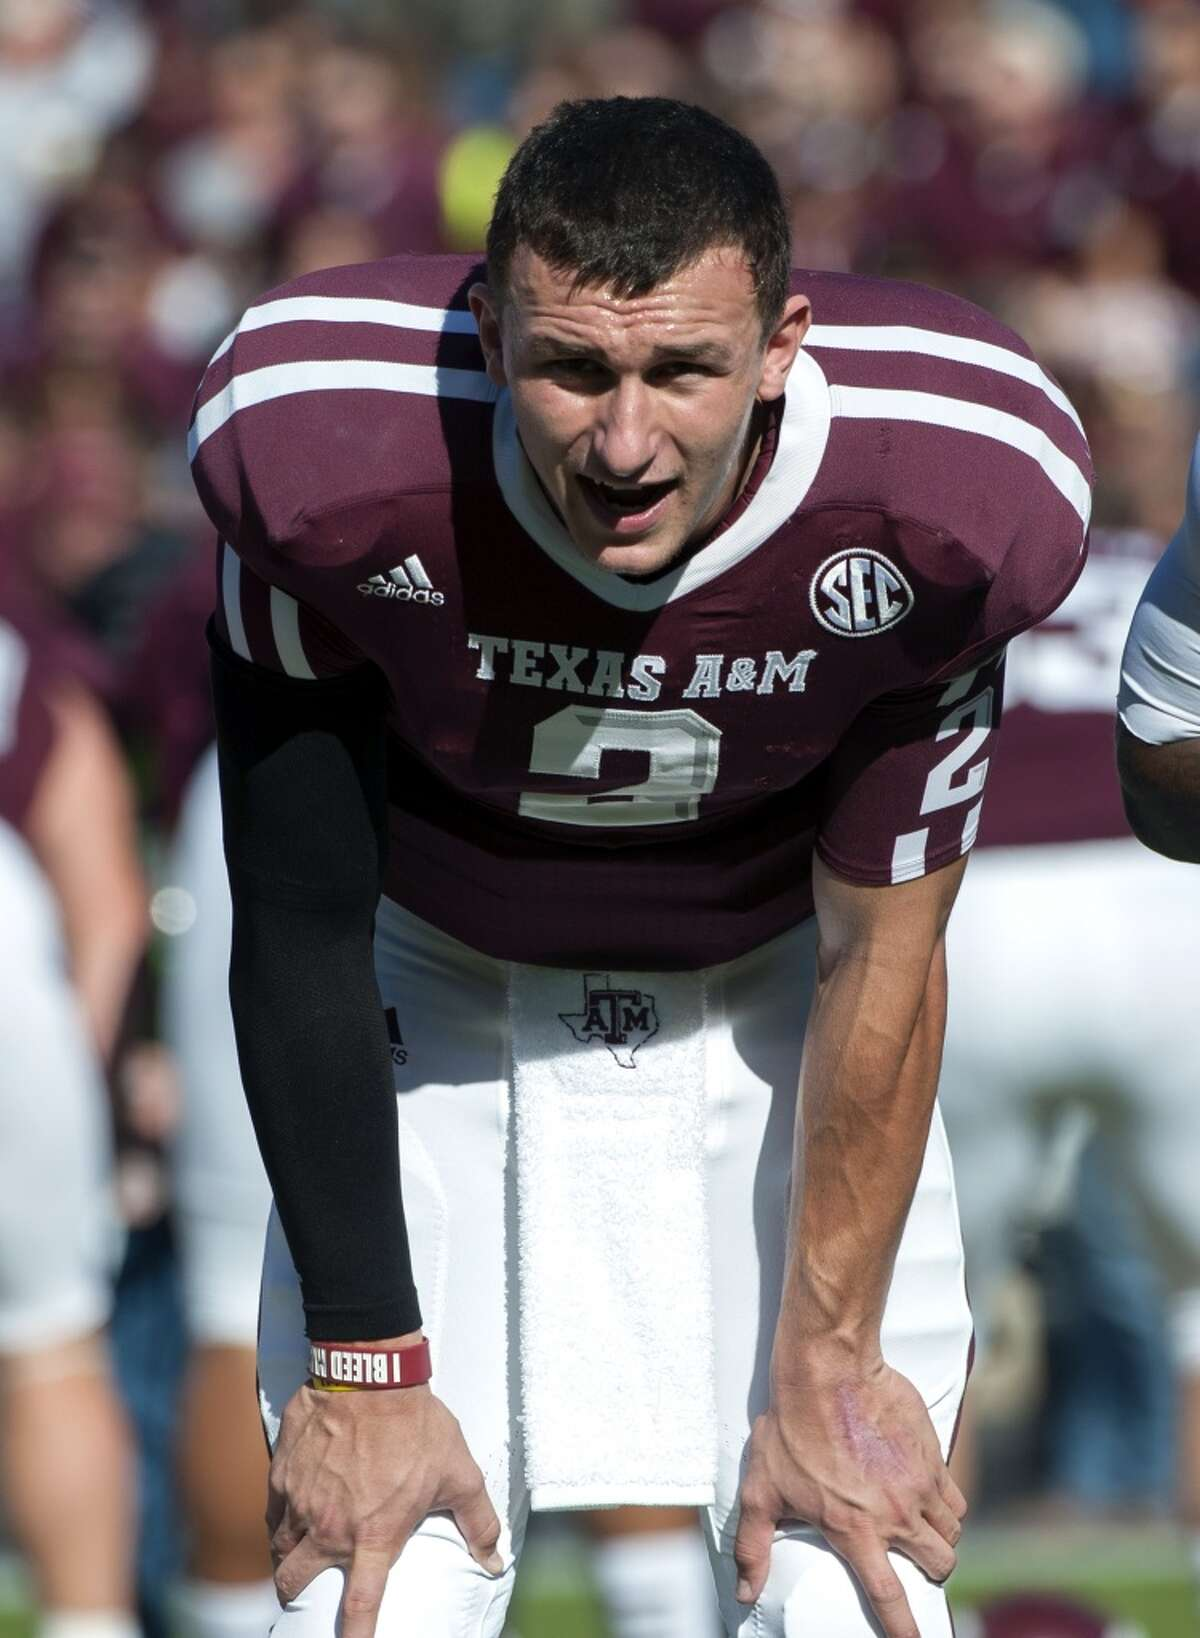 Texas A&M's Johnny Manziel sings